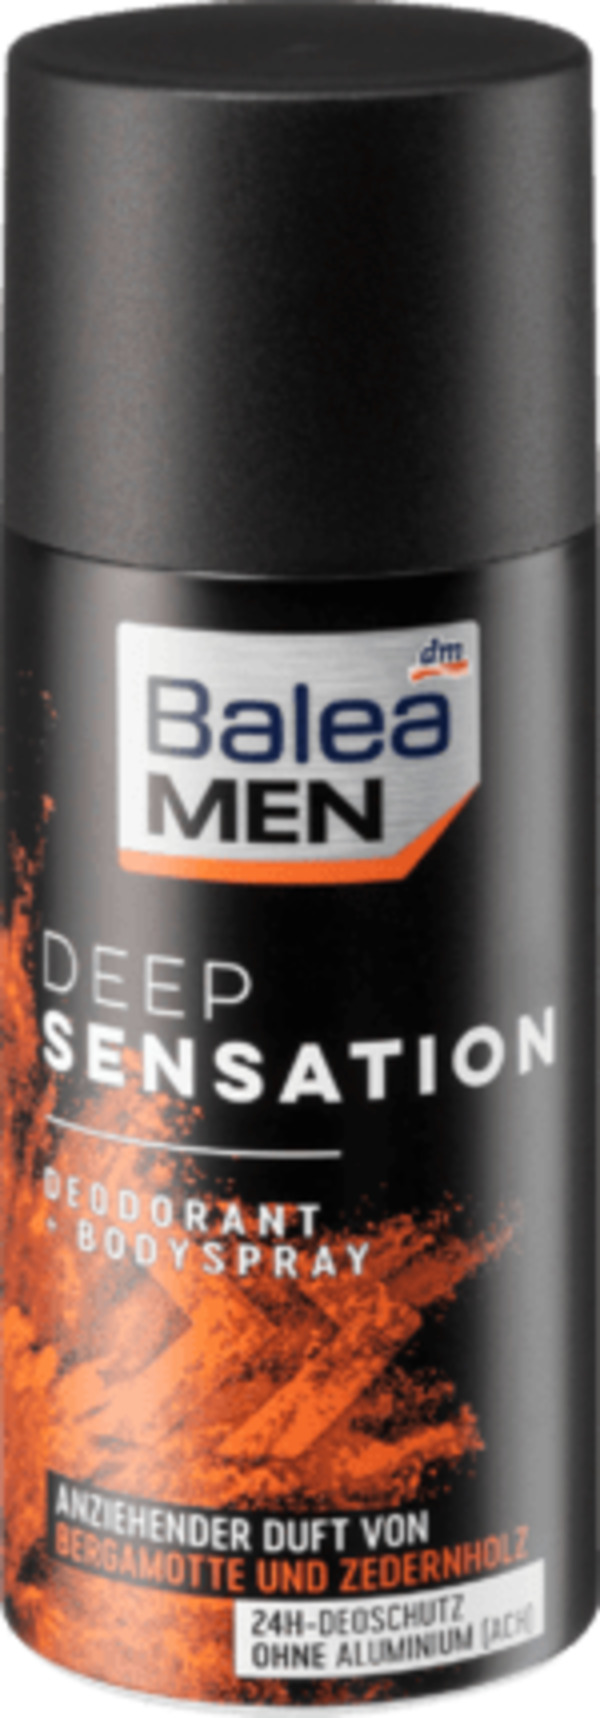 Balea MEN Deospray Deep Sensation